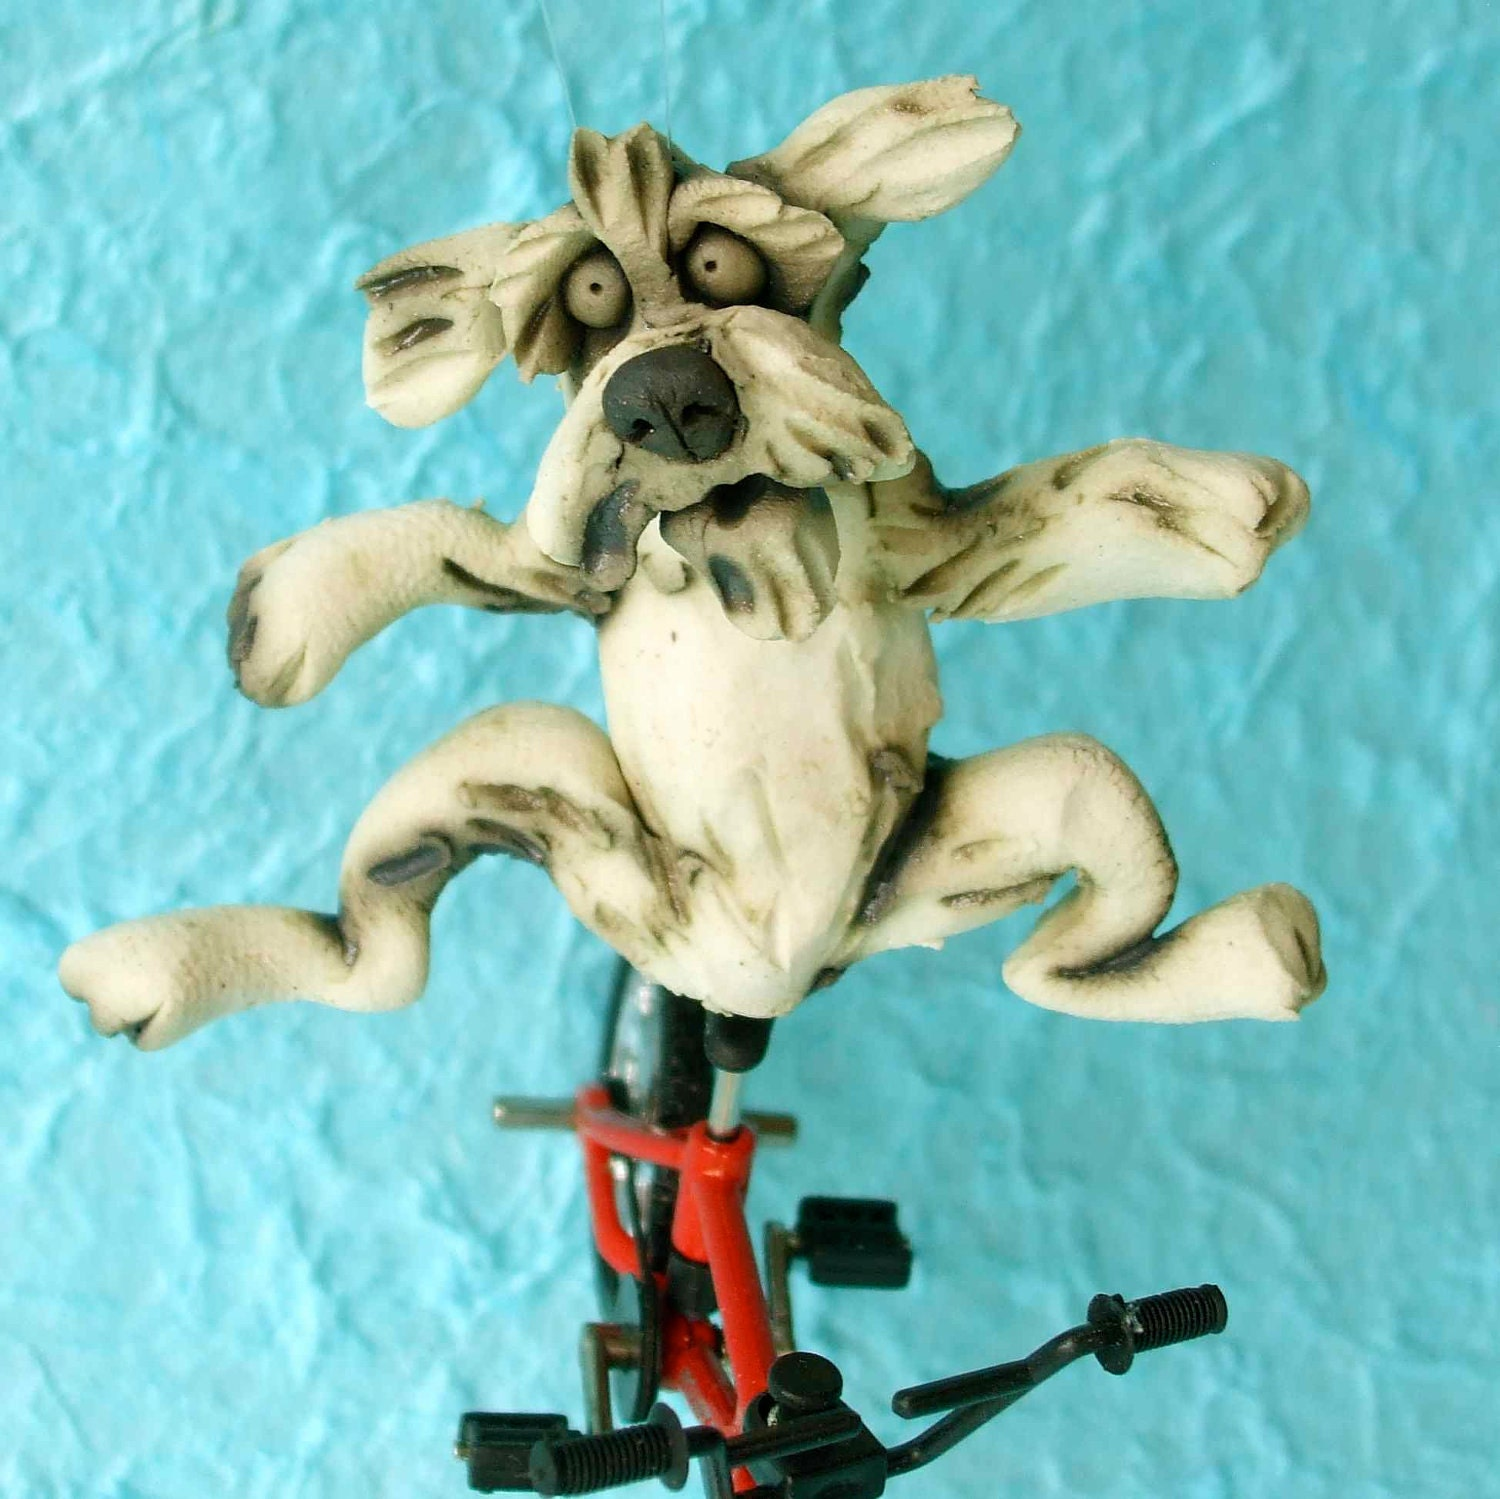 Dog Riding a Bicycle Sculpture